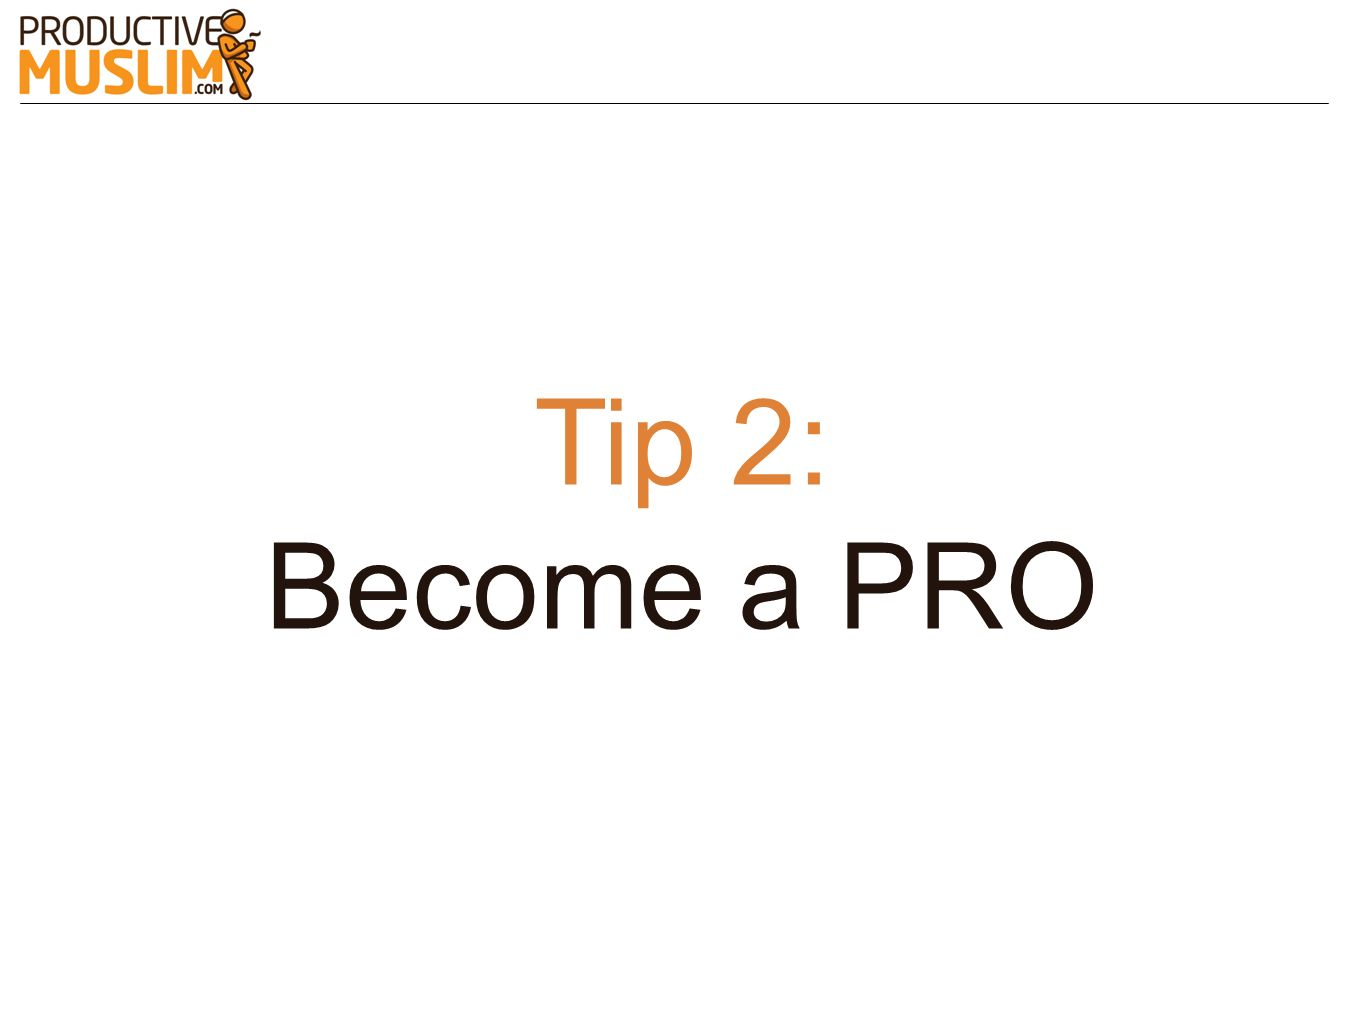 Tip 2: Become a PRO